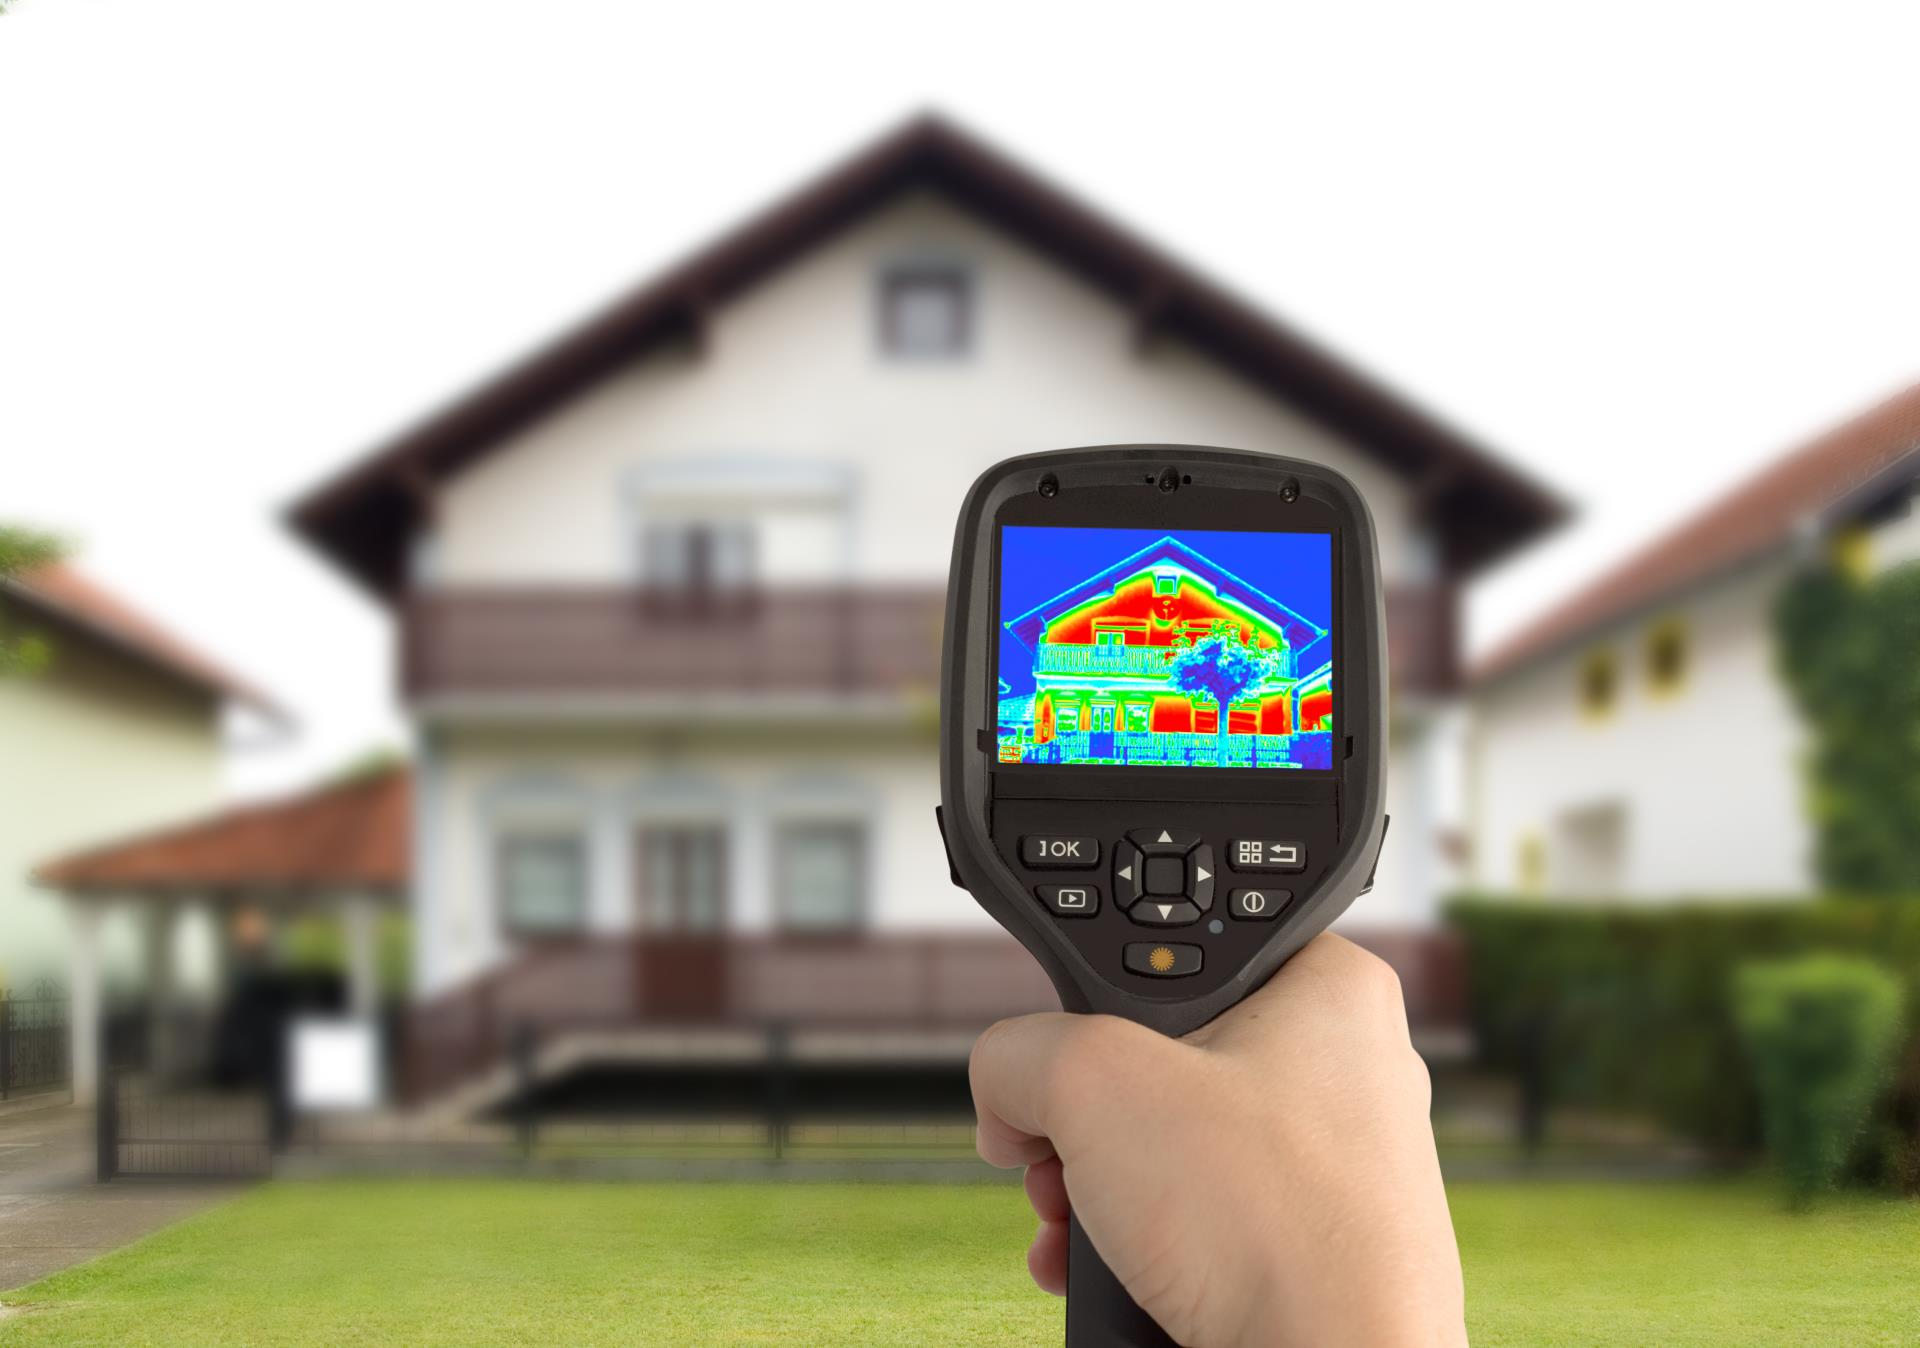 Person conducting heat assessment of house